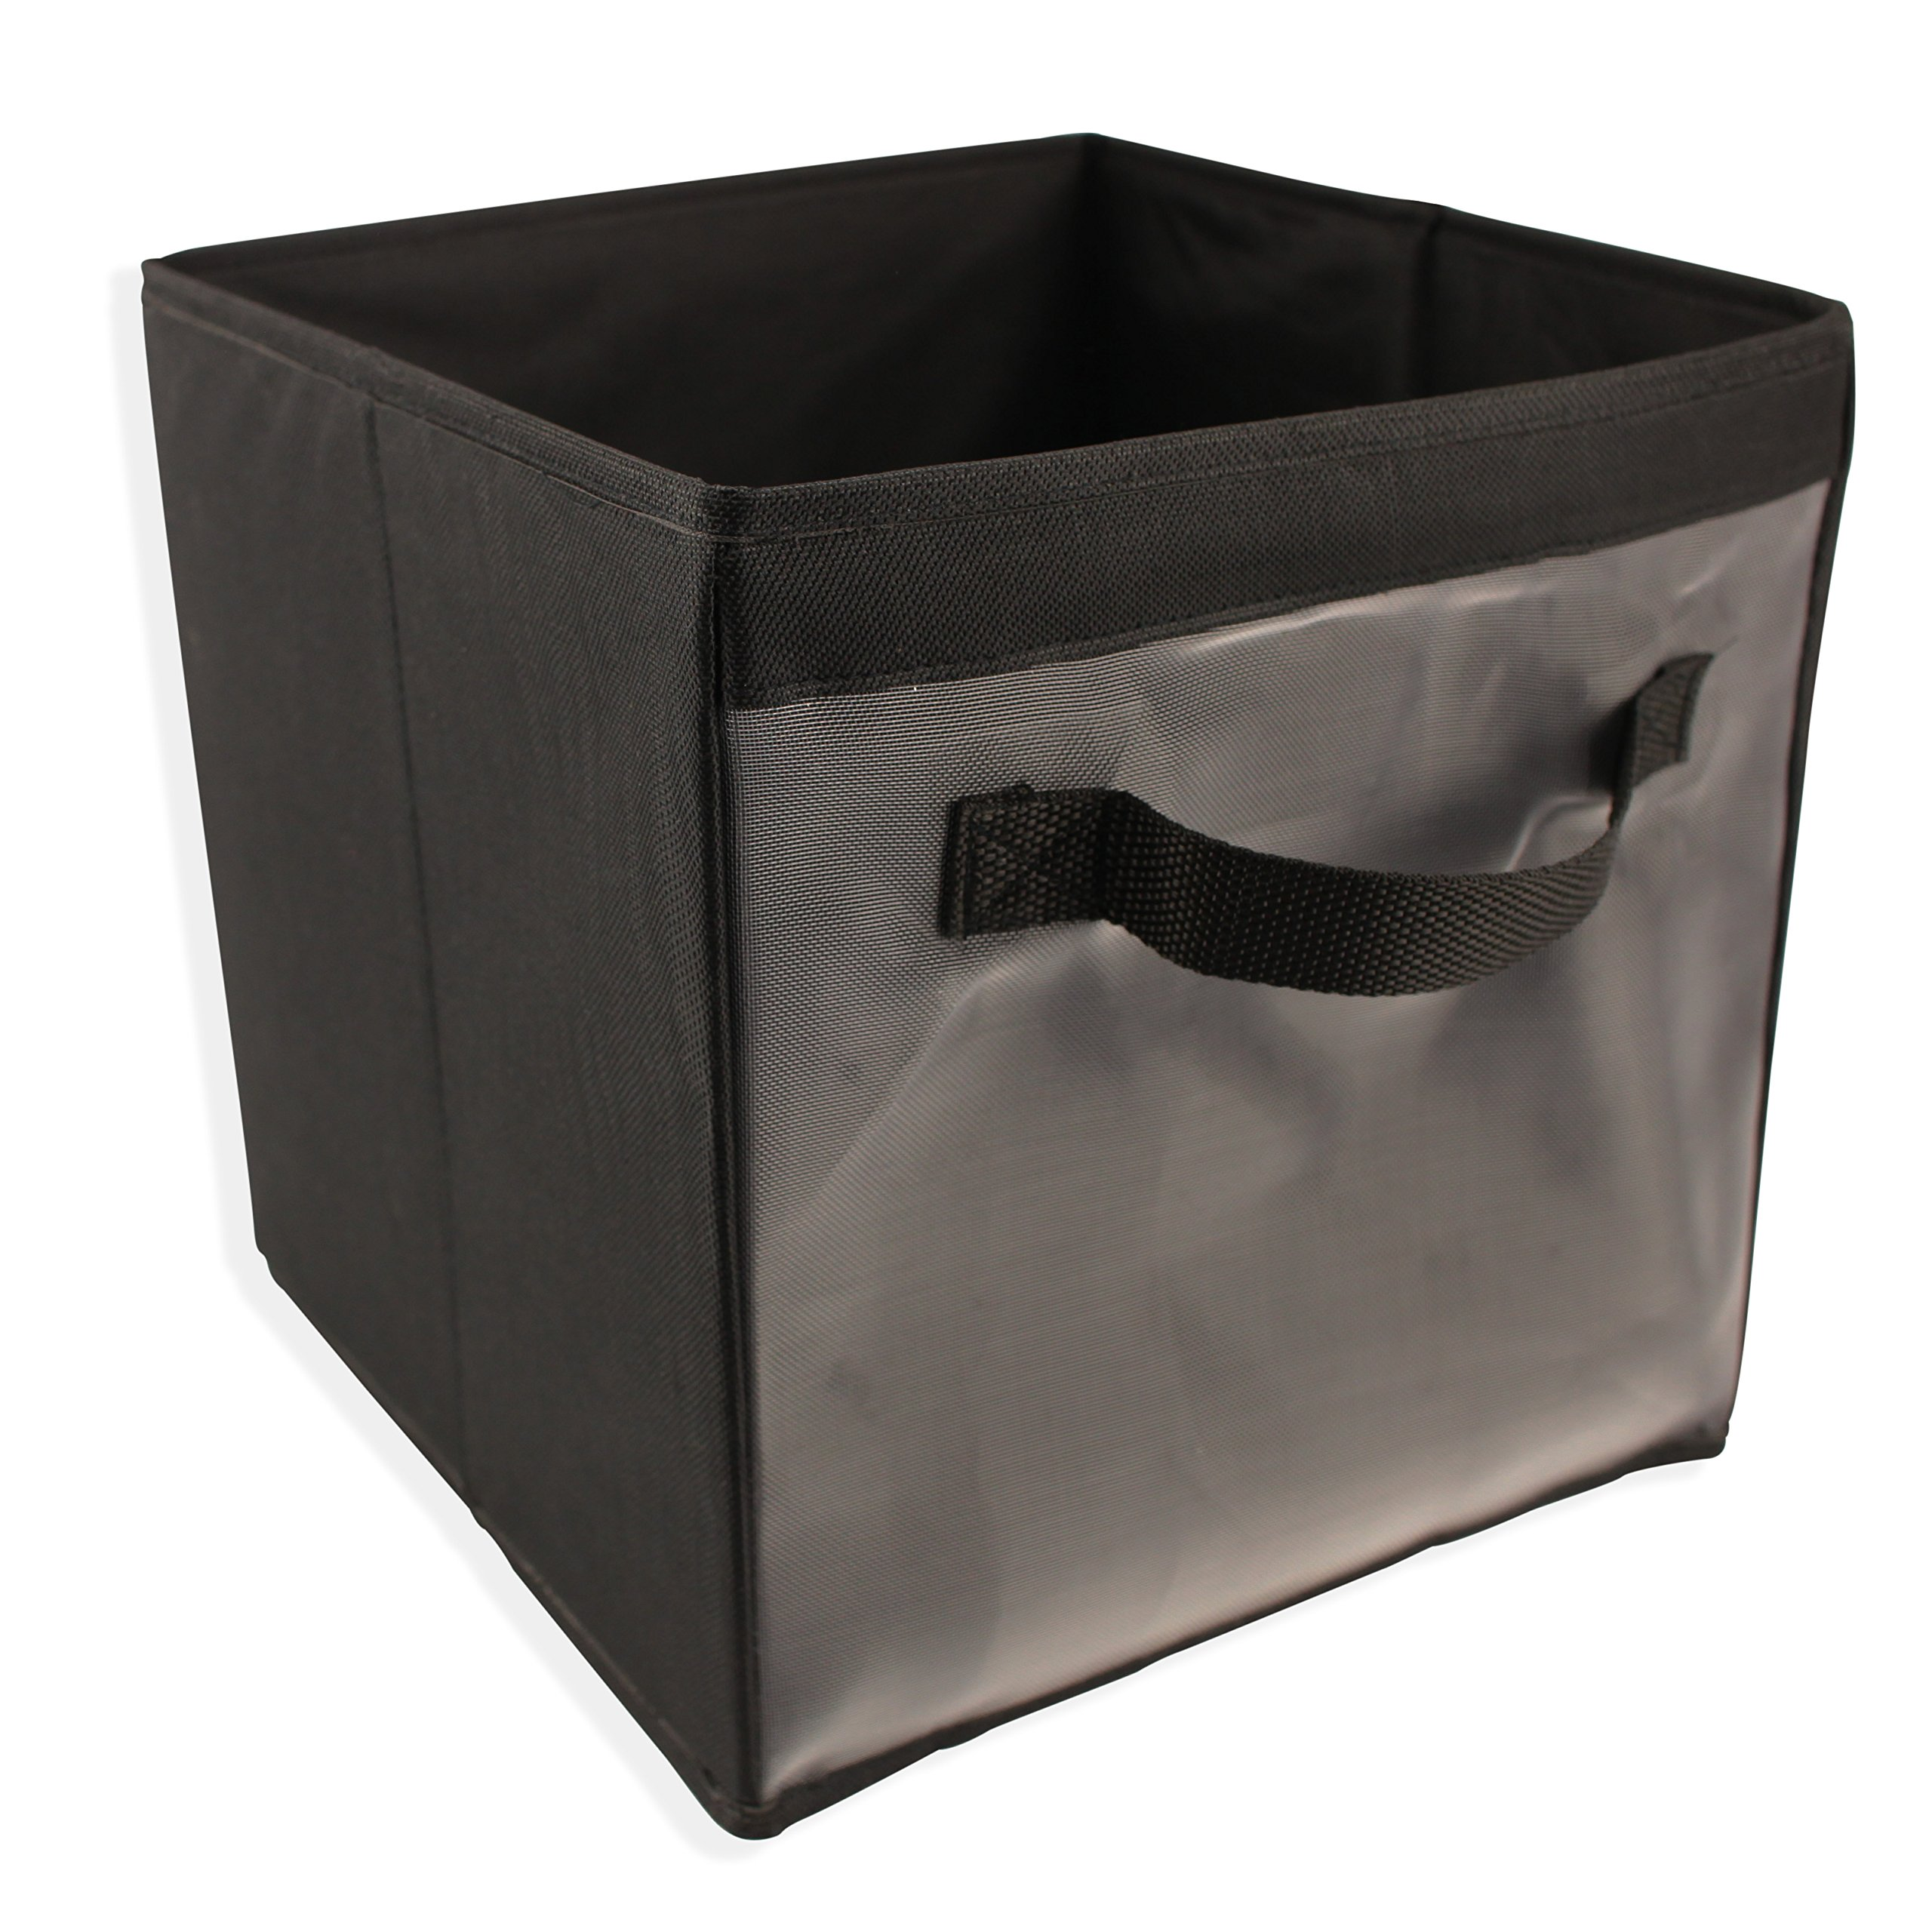 EASYVIEW Storage Cube with Handle 100% Woven Oxford Nylon Bin with Mesh See Thru Side 10.5 x 10.5 x 10 Inches, Foldable (Black)